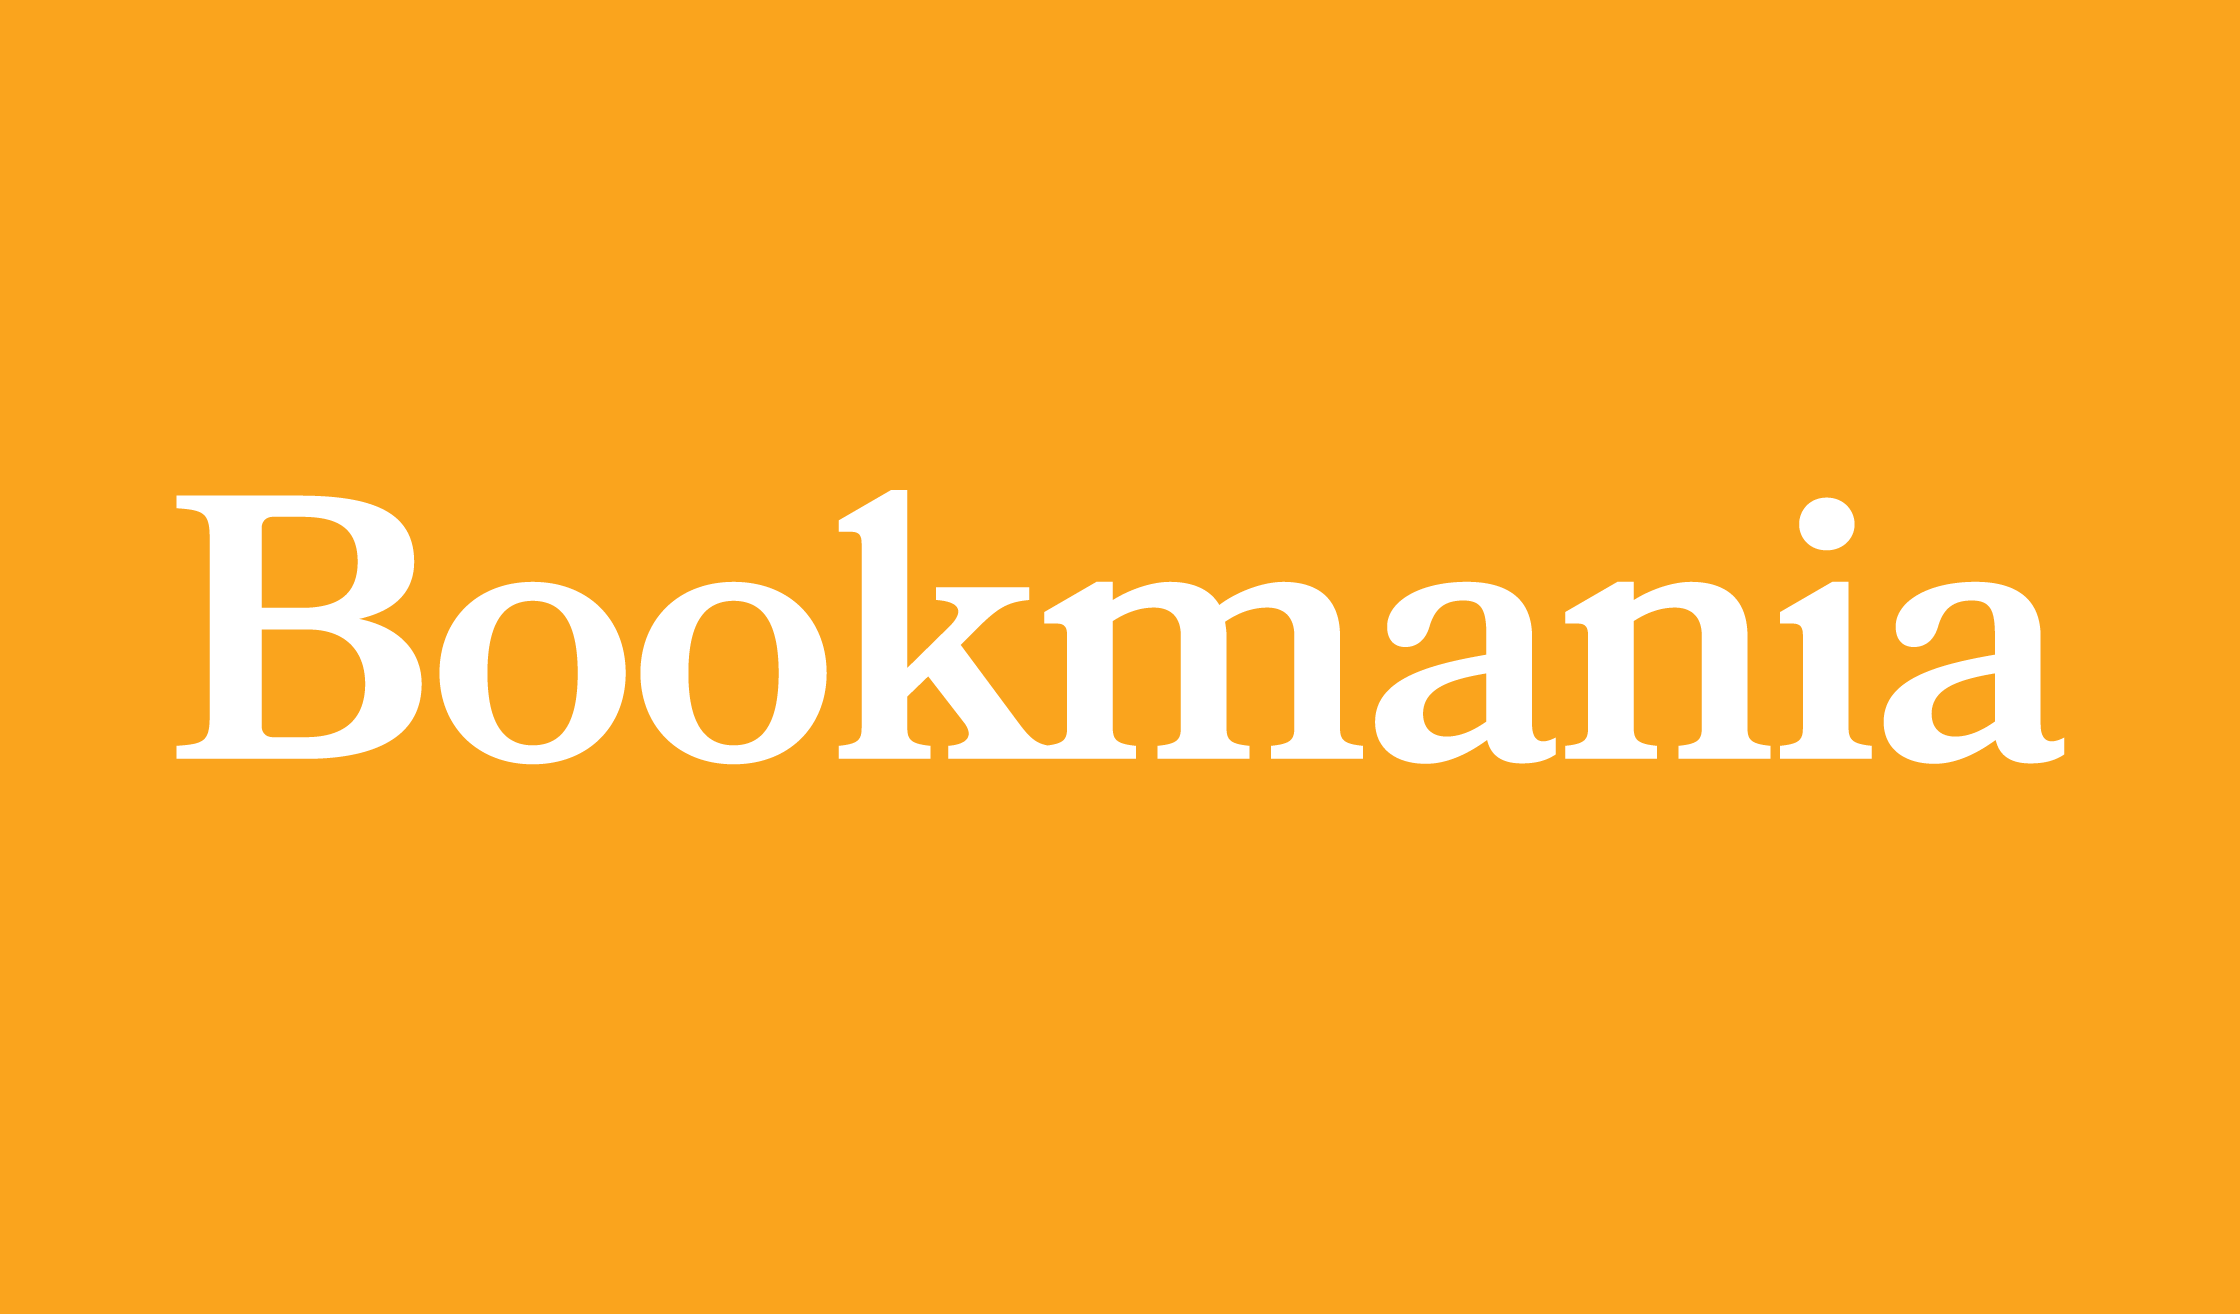 Bookmania Banner Name 2240